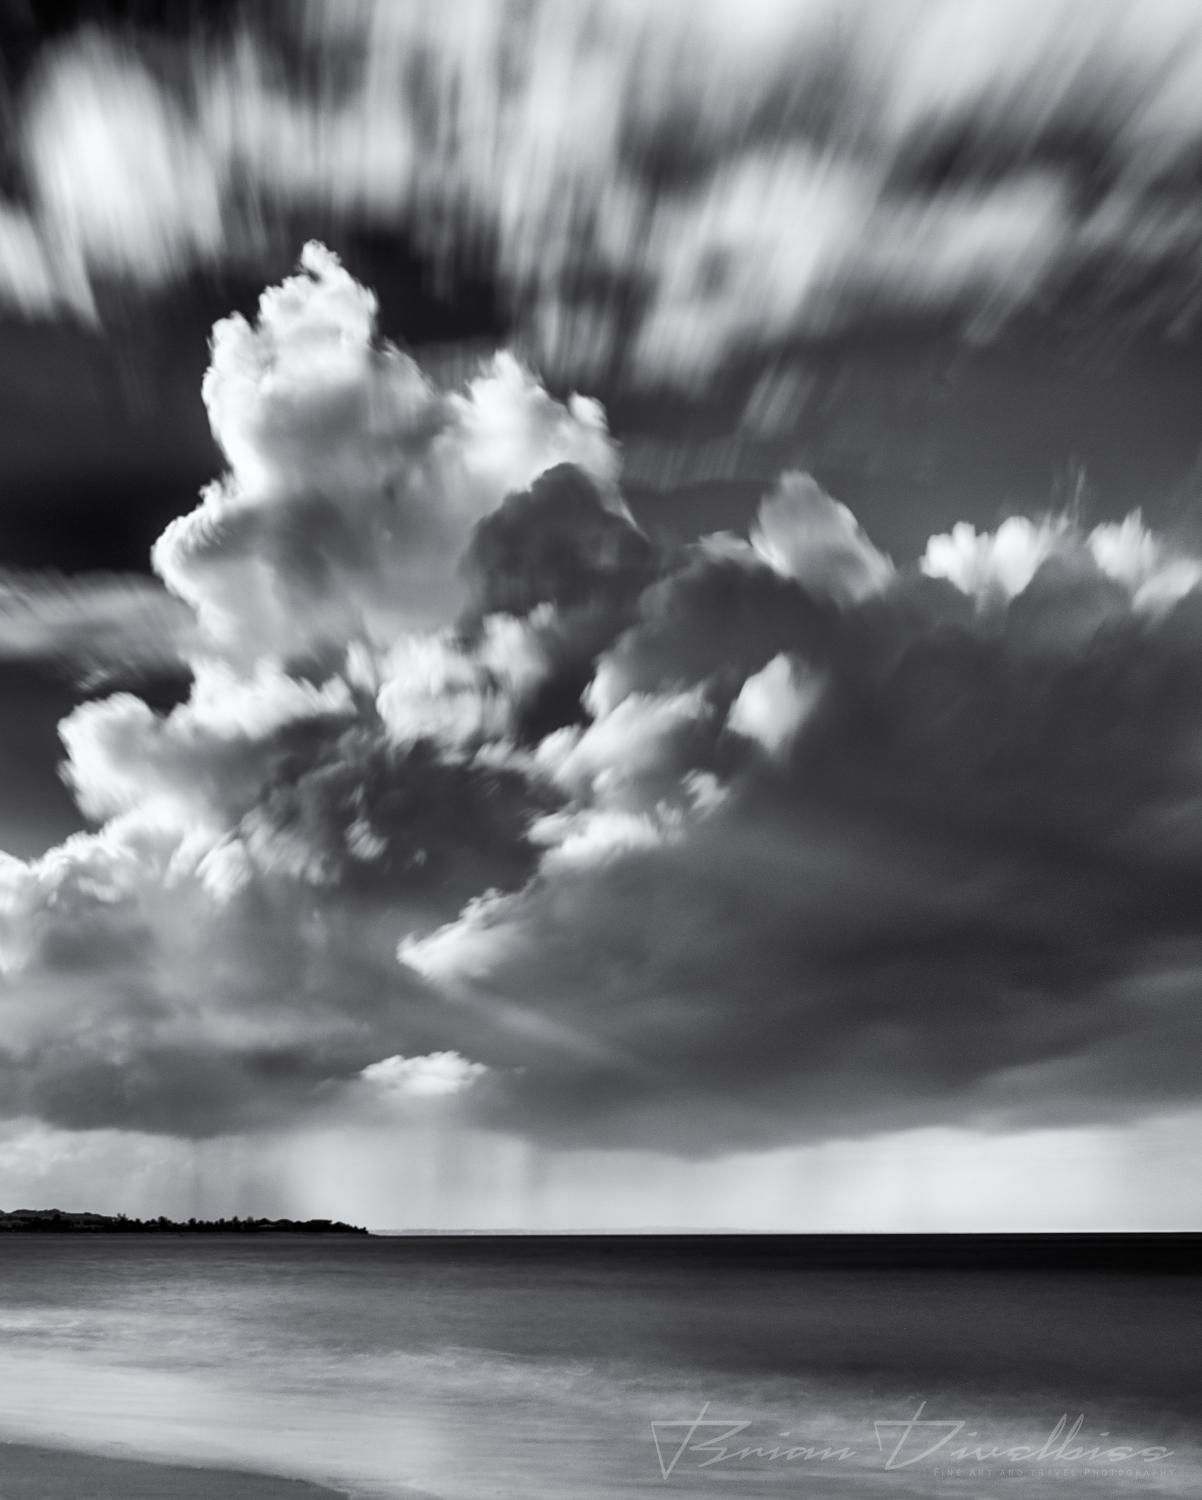 Afternoon storm clouds above the beach in Turks and Caicos in black and white.